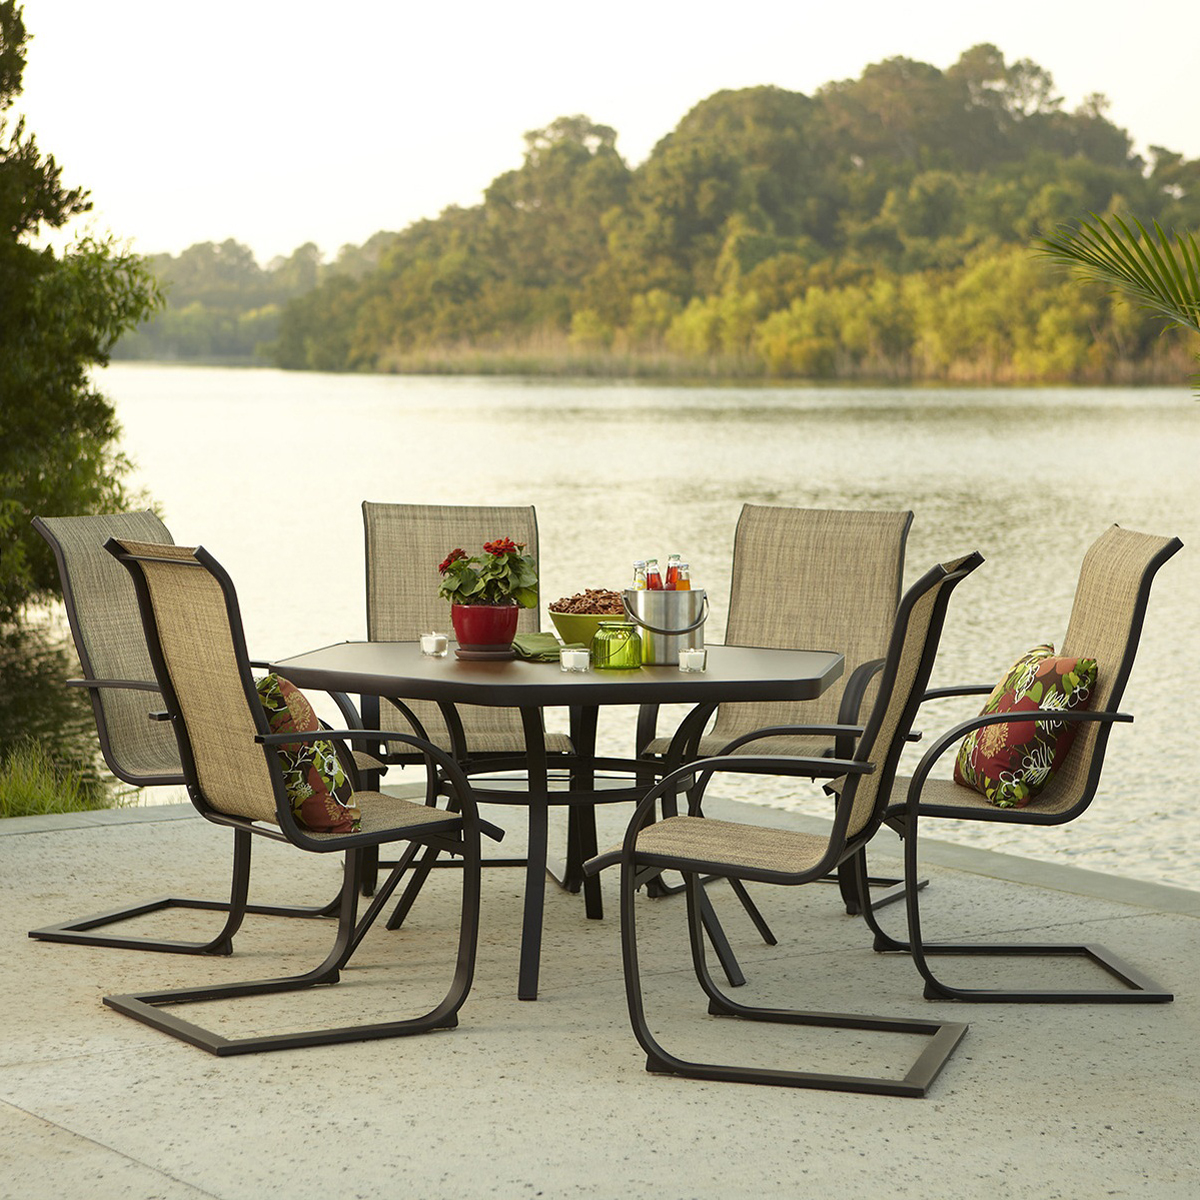 Art Van Outdoor Furniture For Perfect